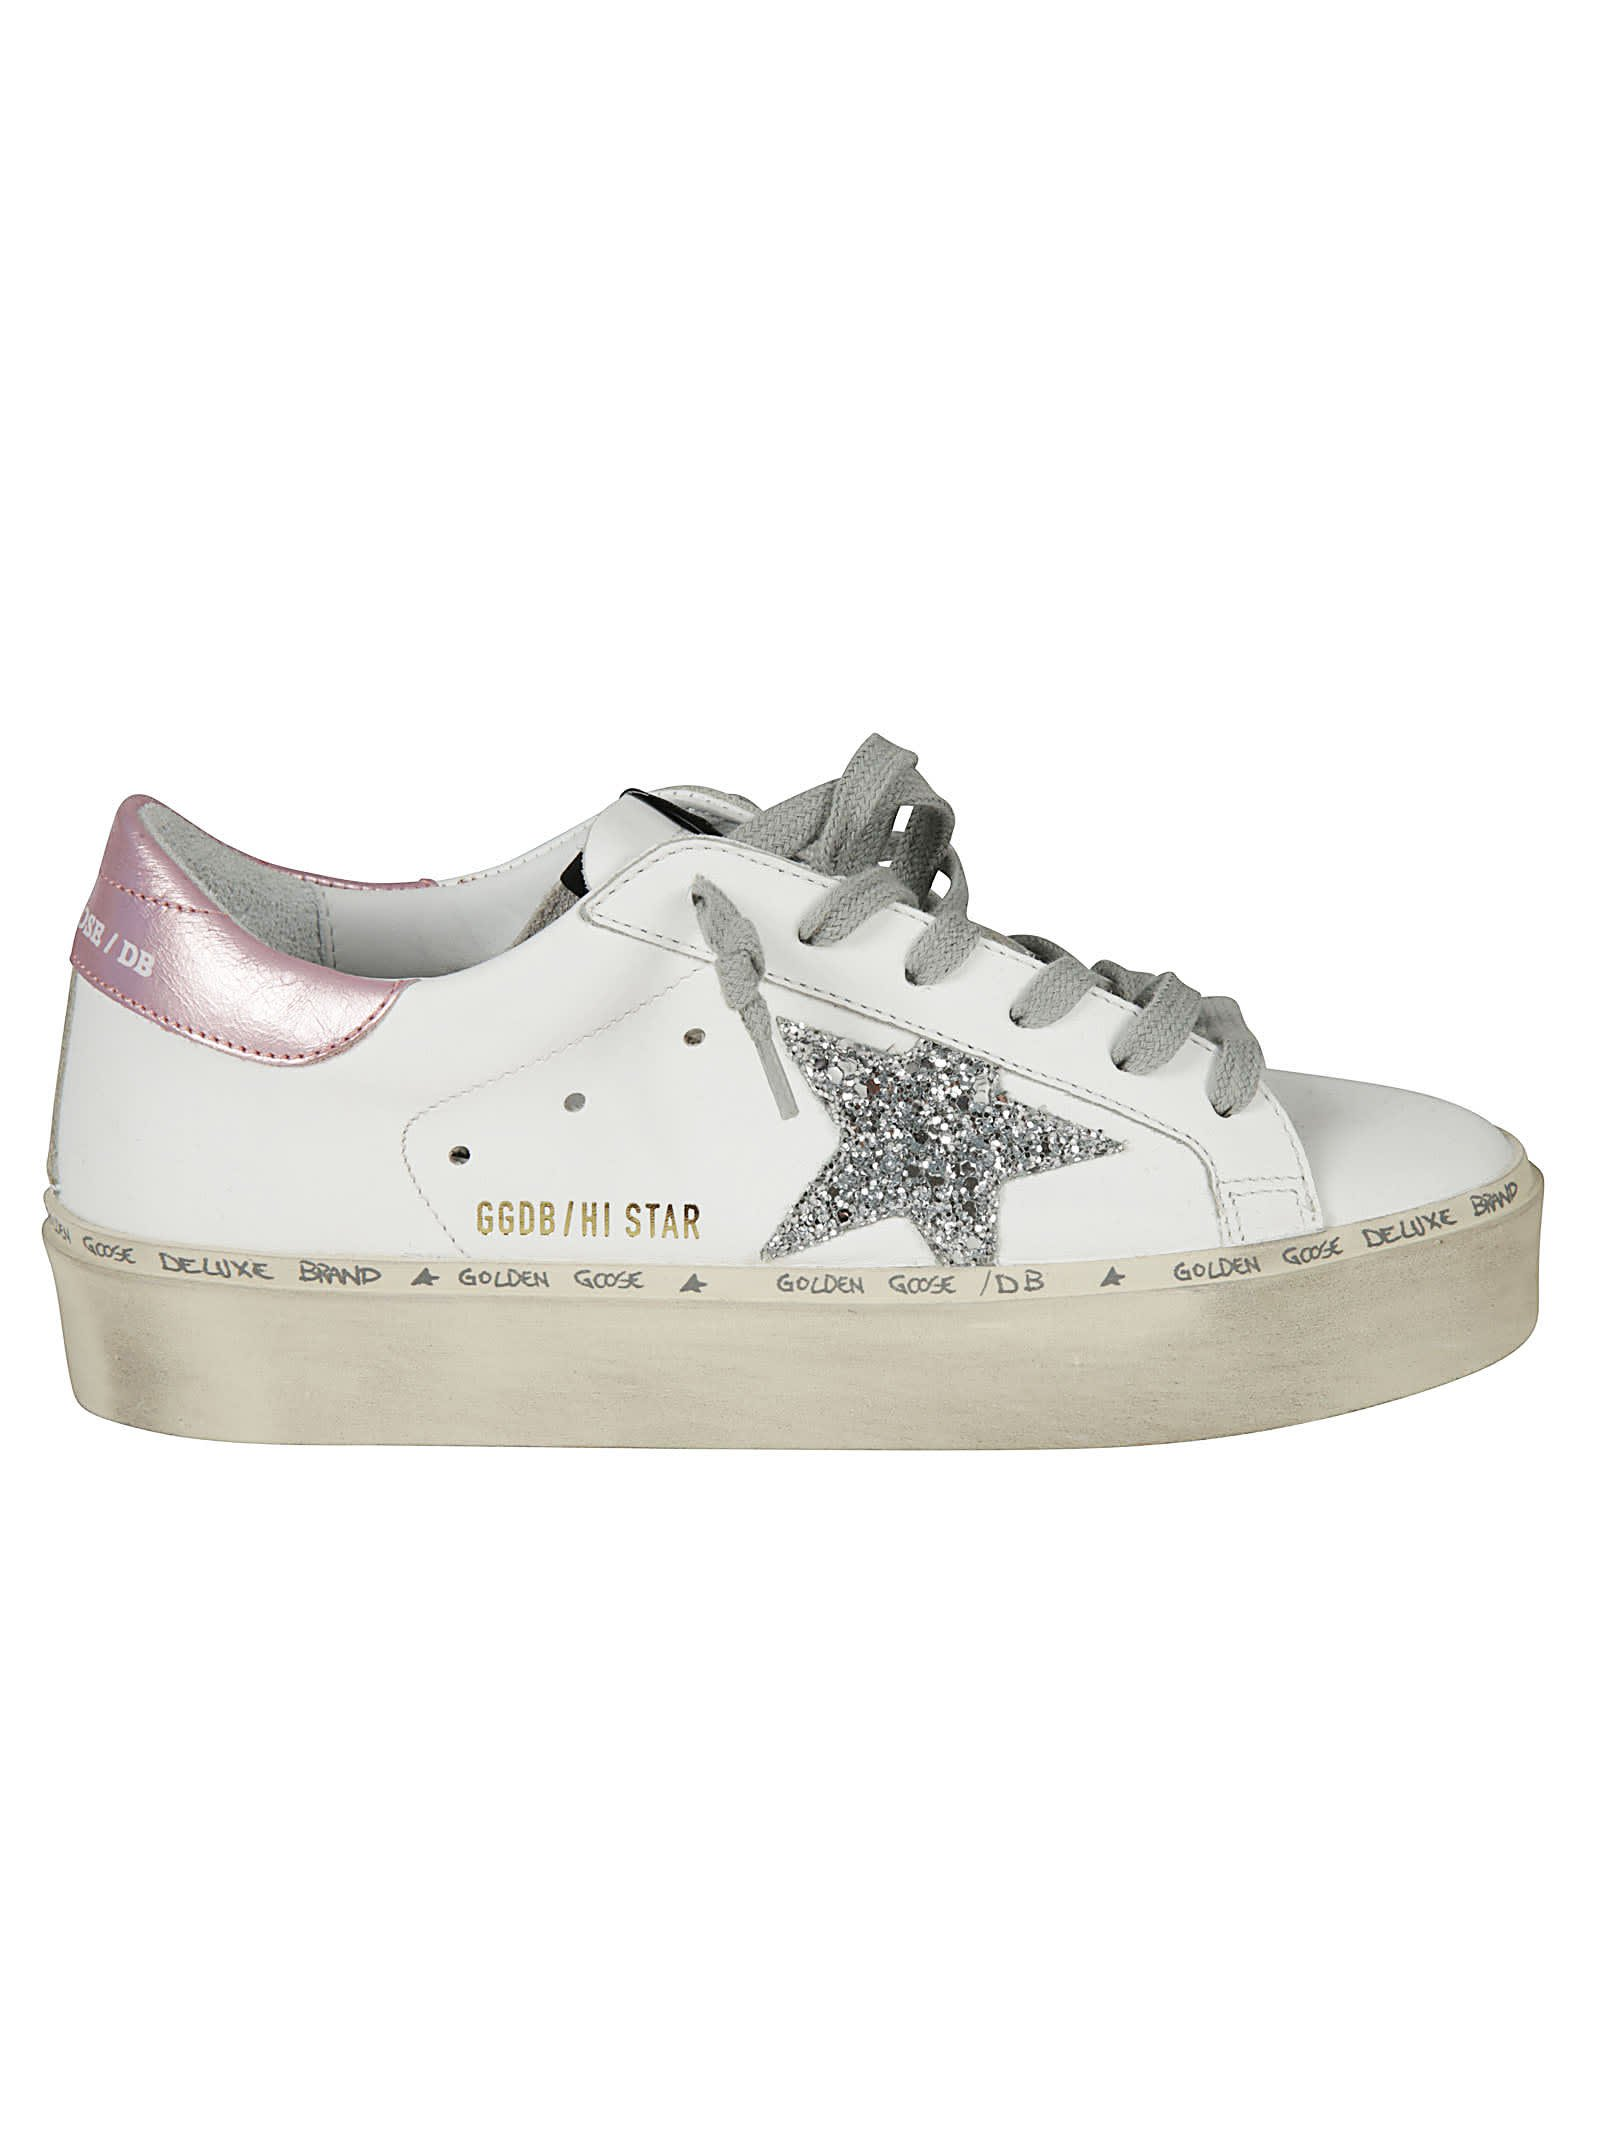 Golden Goose Hi Star Sneakers